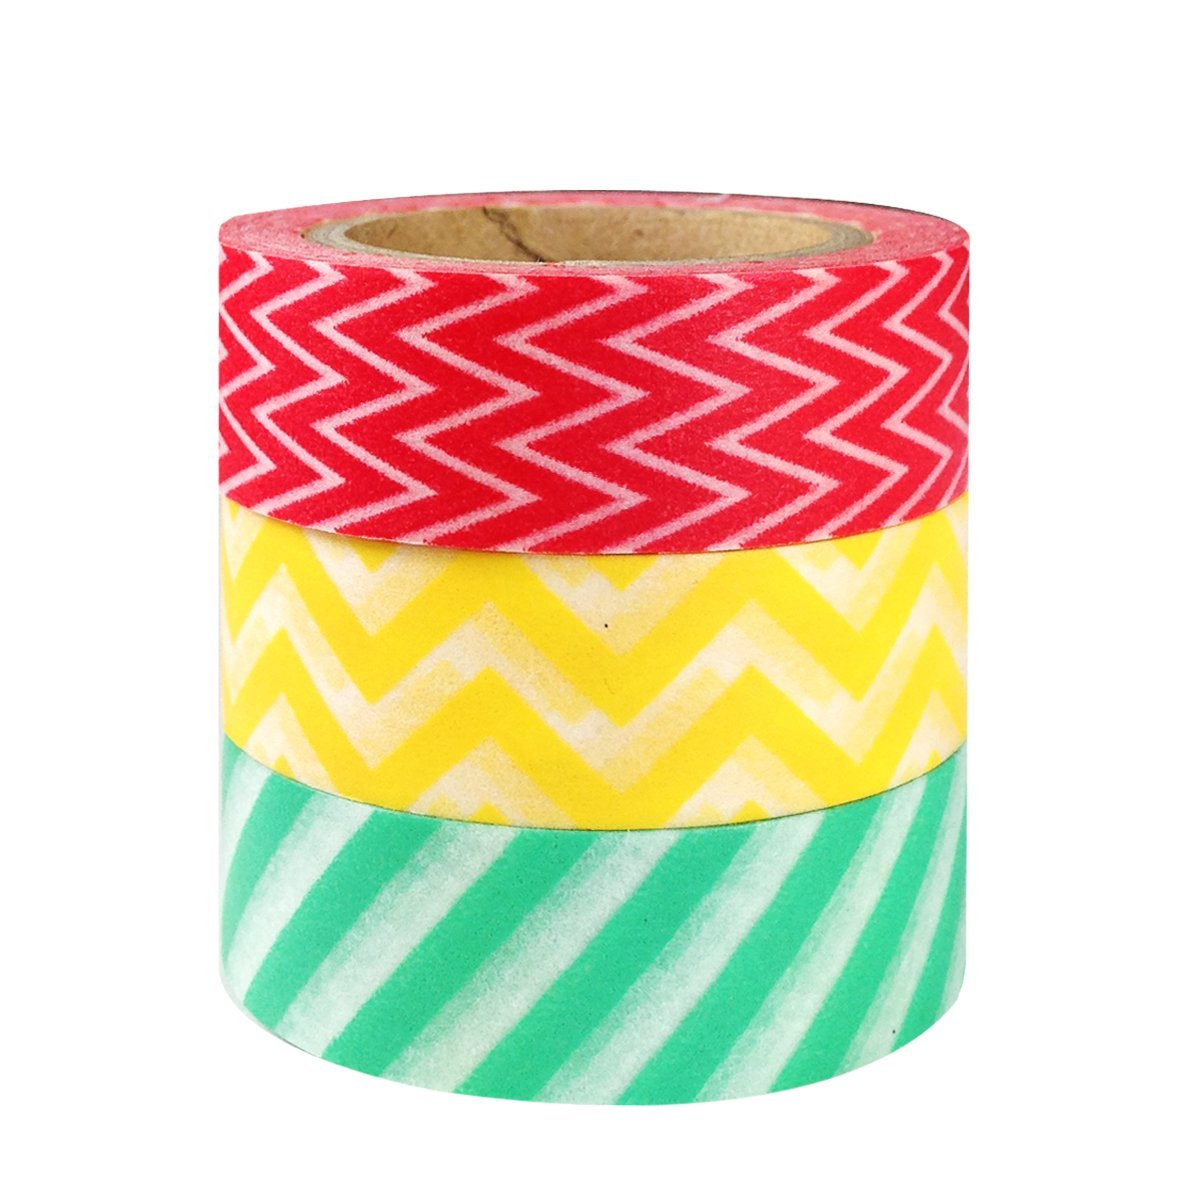 Wrapables Dancing Stripes Japanese Washi Masking Tape (set of 3)